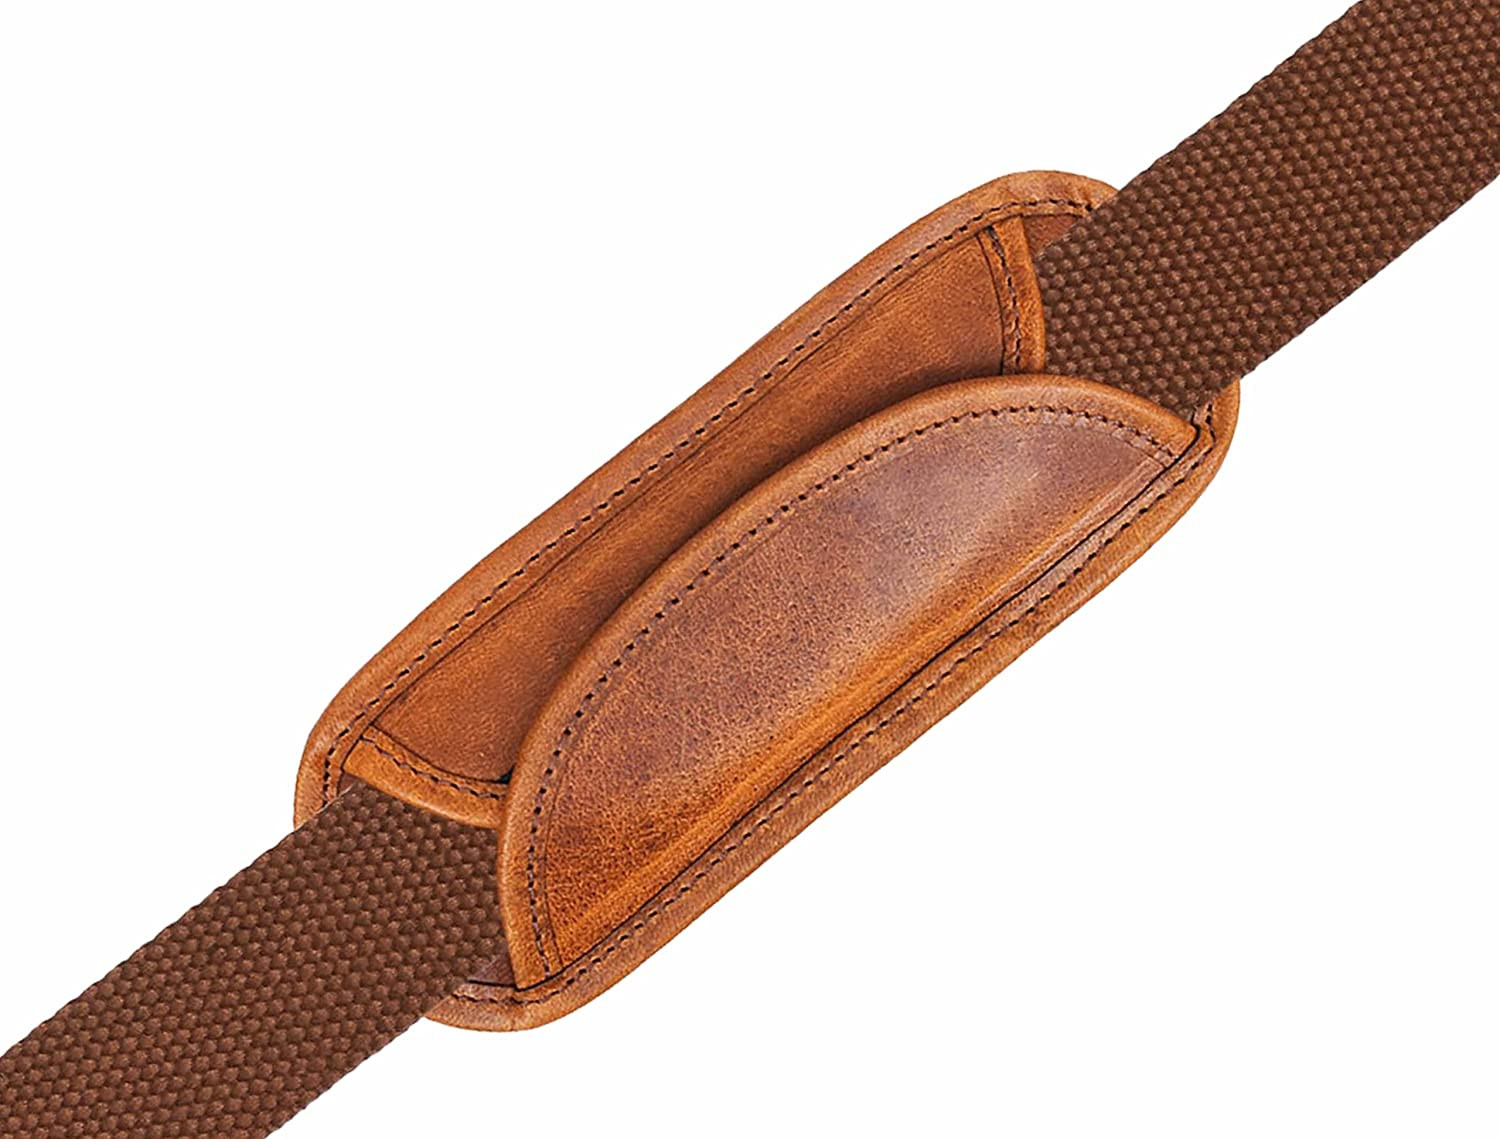 Replacement Shoulder Pad for Camera,Backpack,Messenger,Laptop,Guitar,Bag by Aaron Leather Goods (Brown)